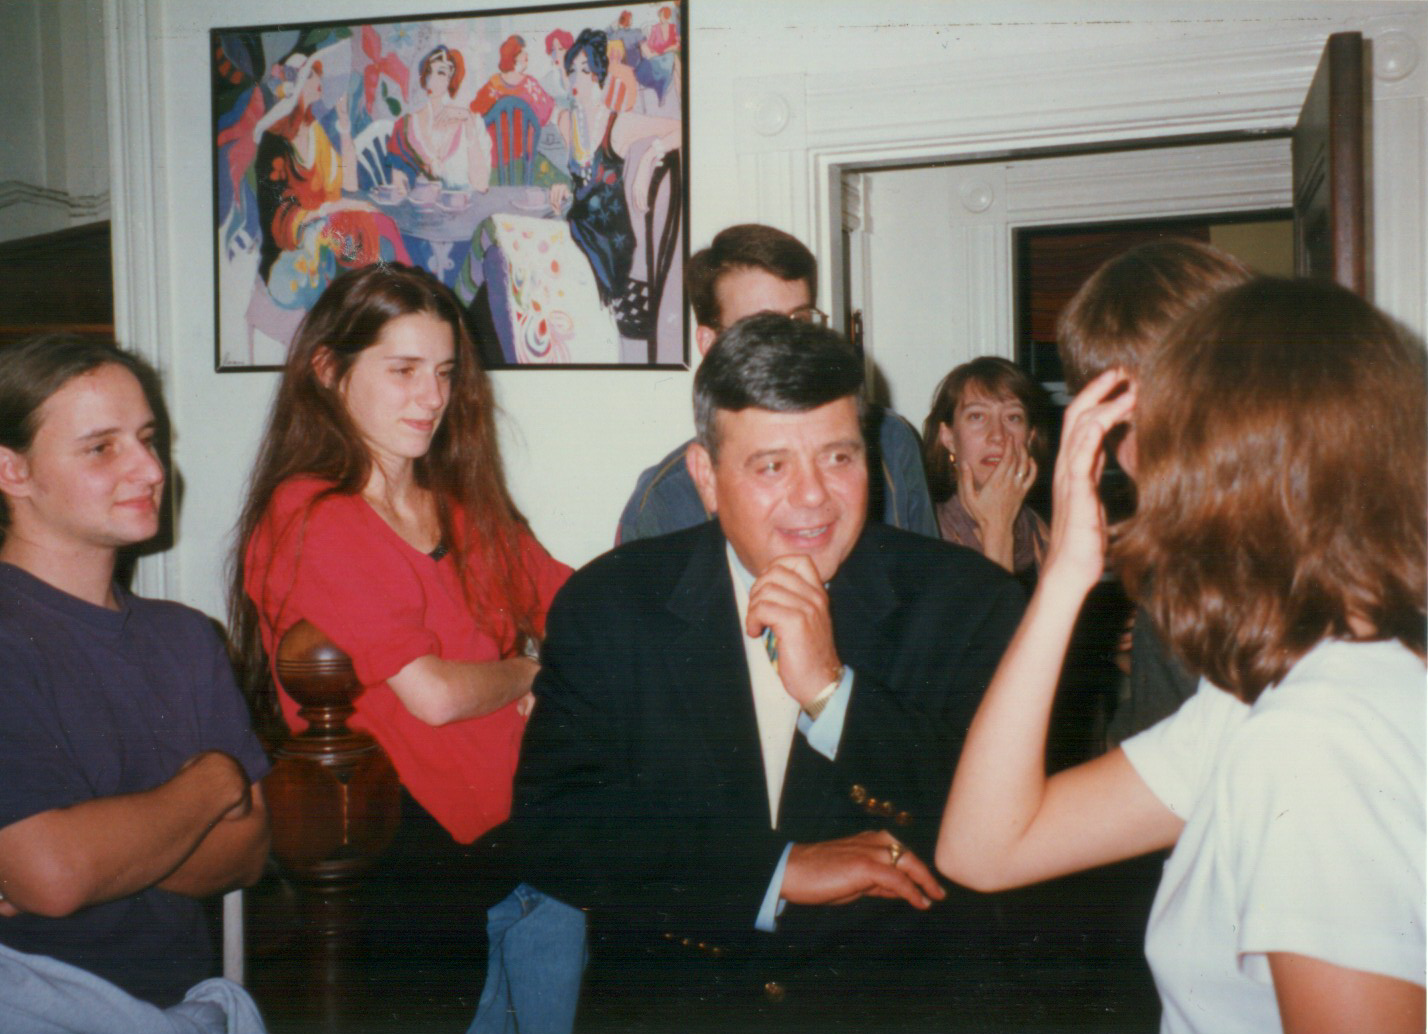 Jonathan Van Gieson, far left, first met Buddy Cianci, center, at a house party in college. The party was themed after WaterFire, a major art installation created in downtown Providence in the 1990s, and so Van Gieson's friends decided to invite the mayor.  Courtesy of Jonathan Van Gieson.